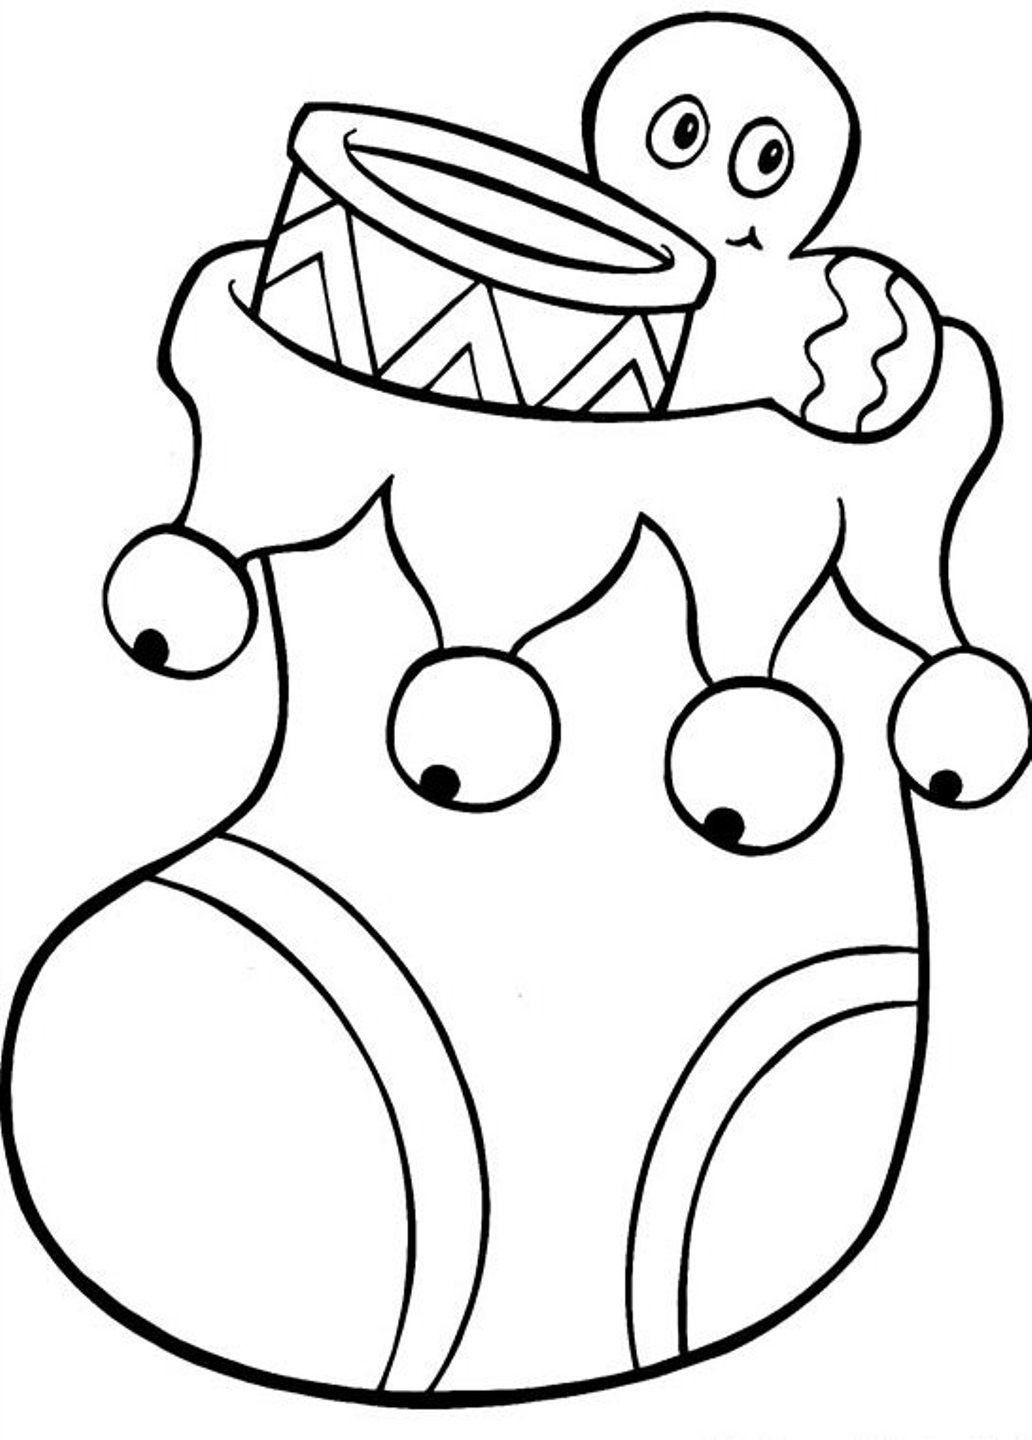 1032x1440 christmas stocking coloring pages